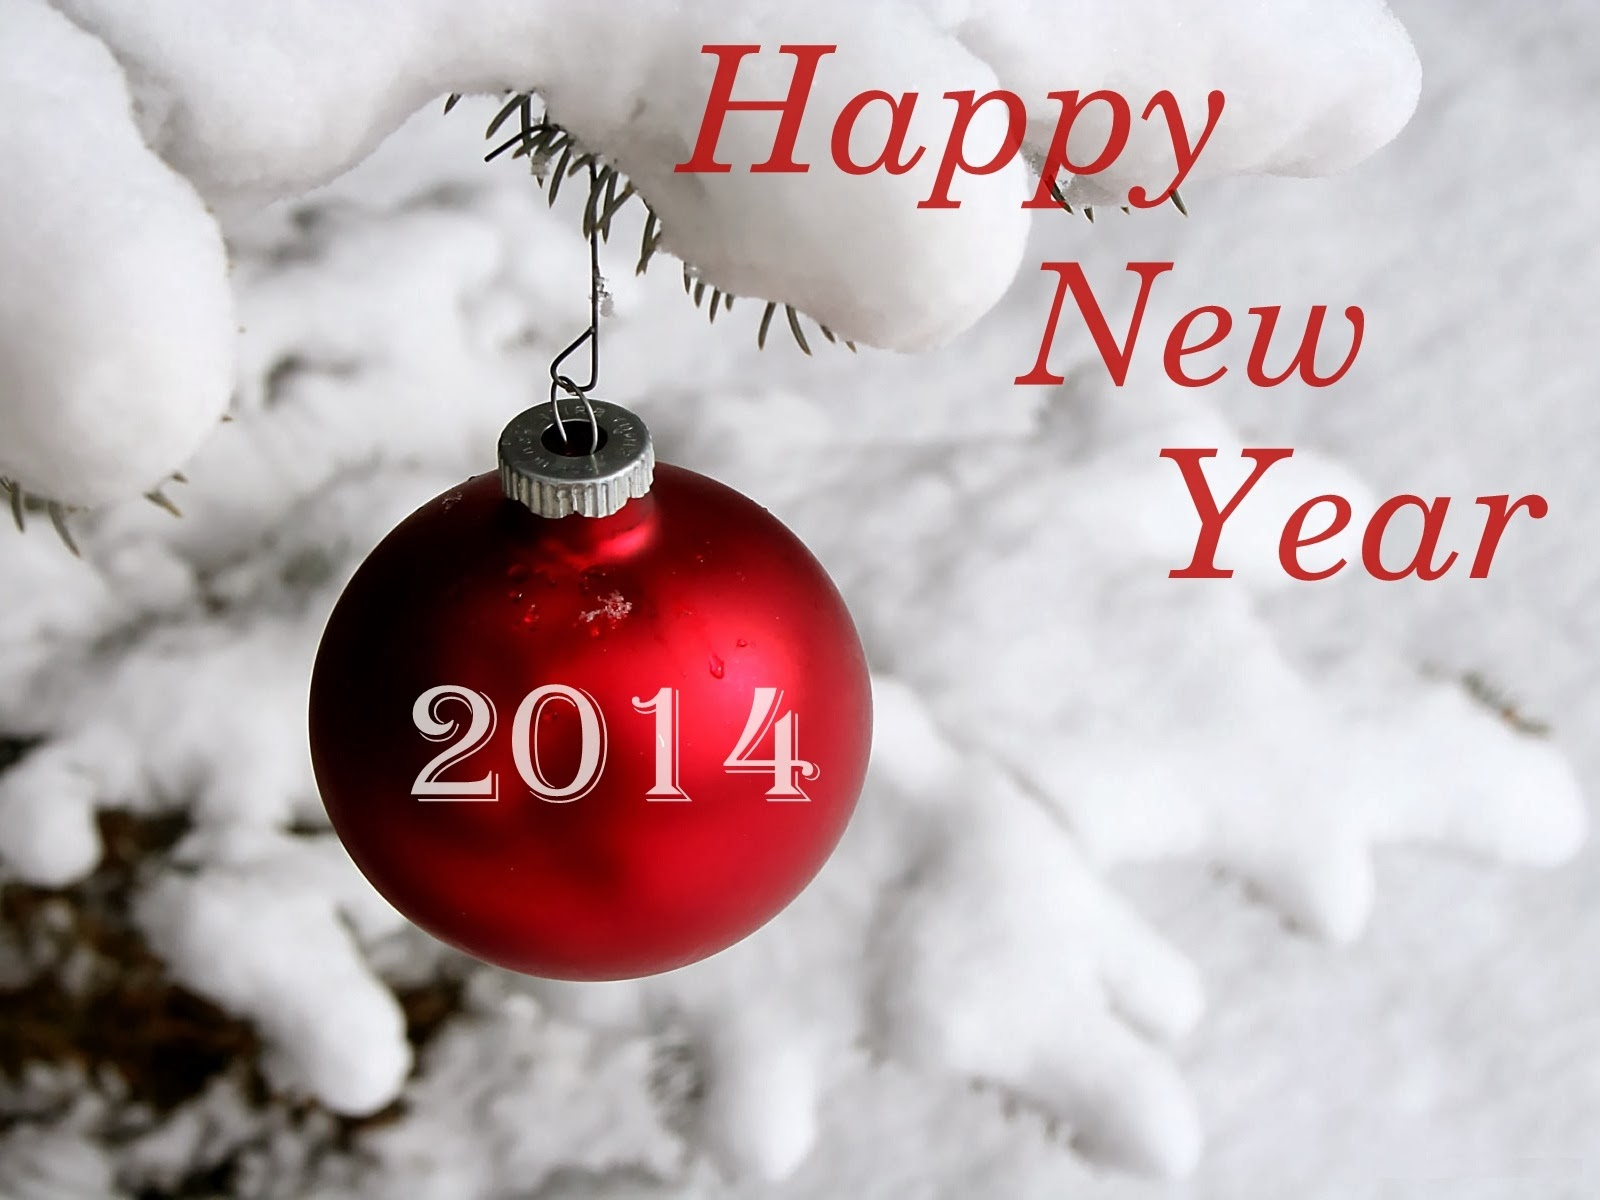 HappyNewYear2014Wallpapersjpg. 1600 x 1200.Nice Happy New Year Text Messages